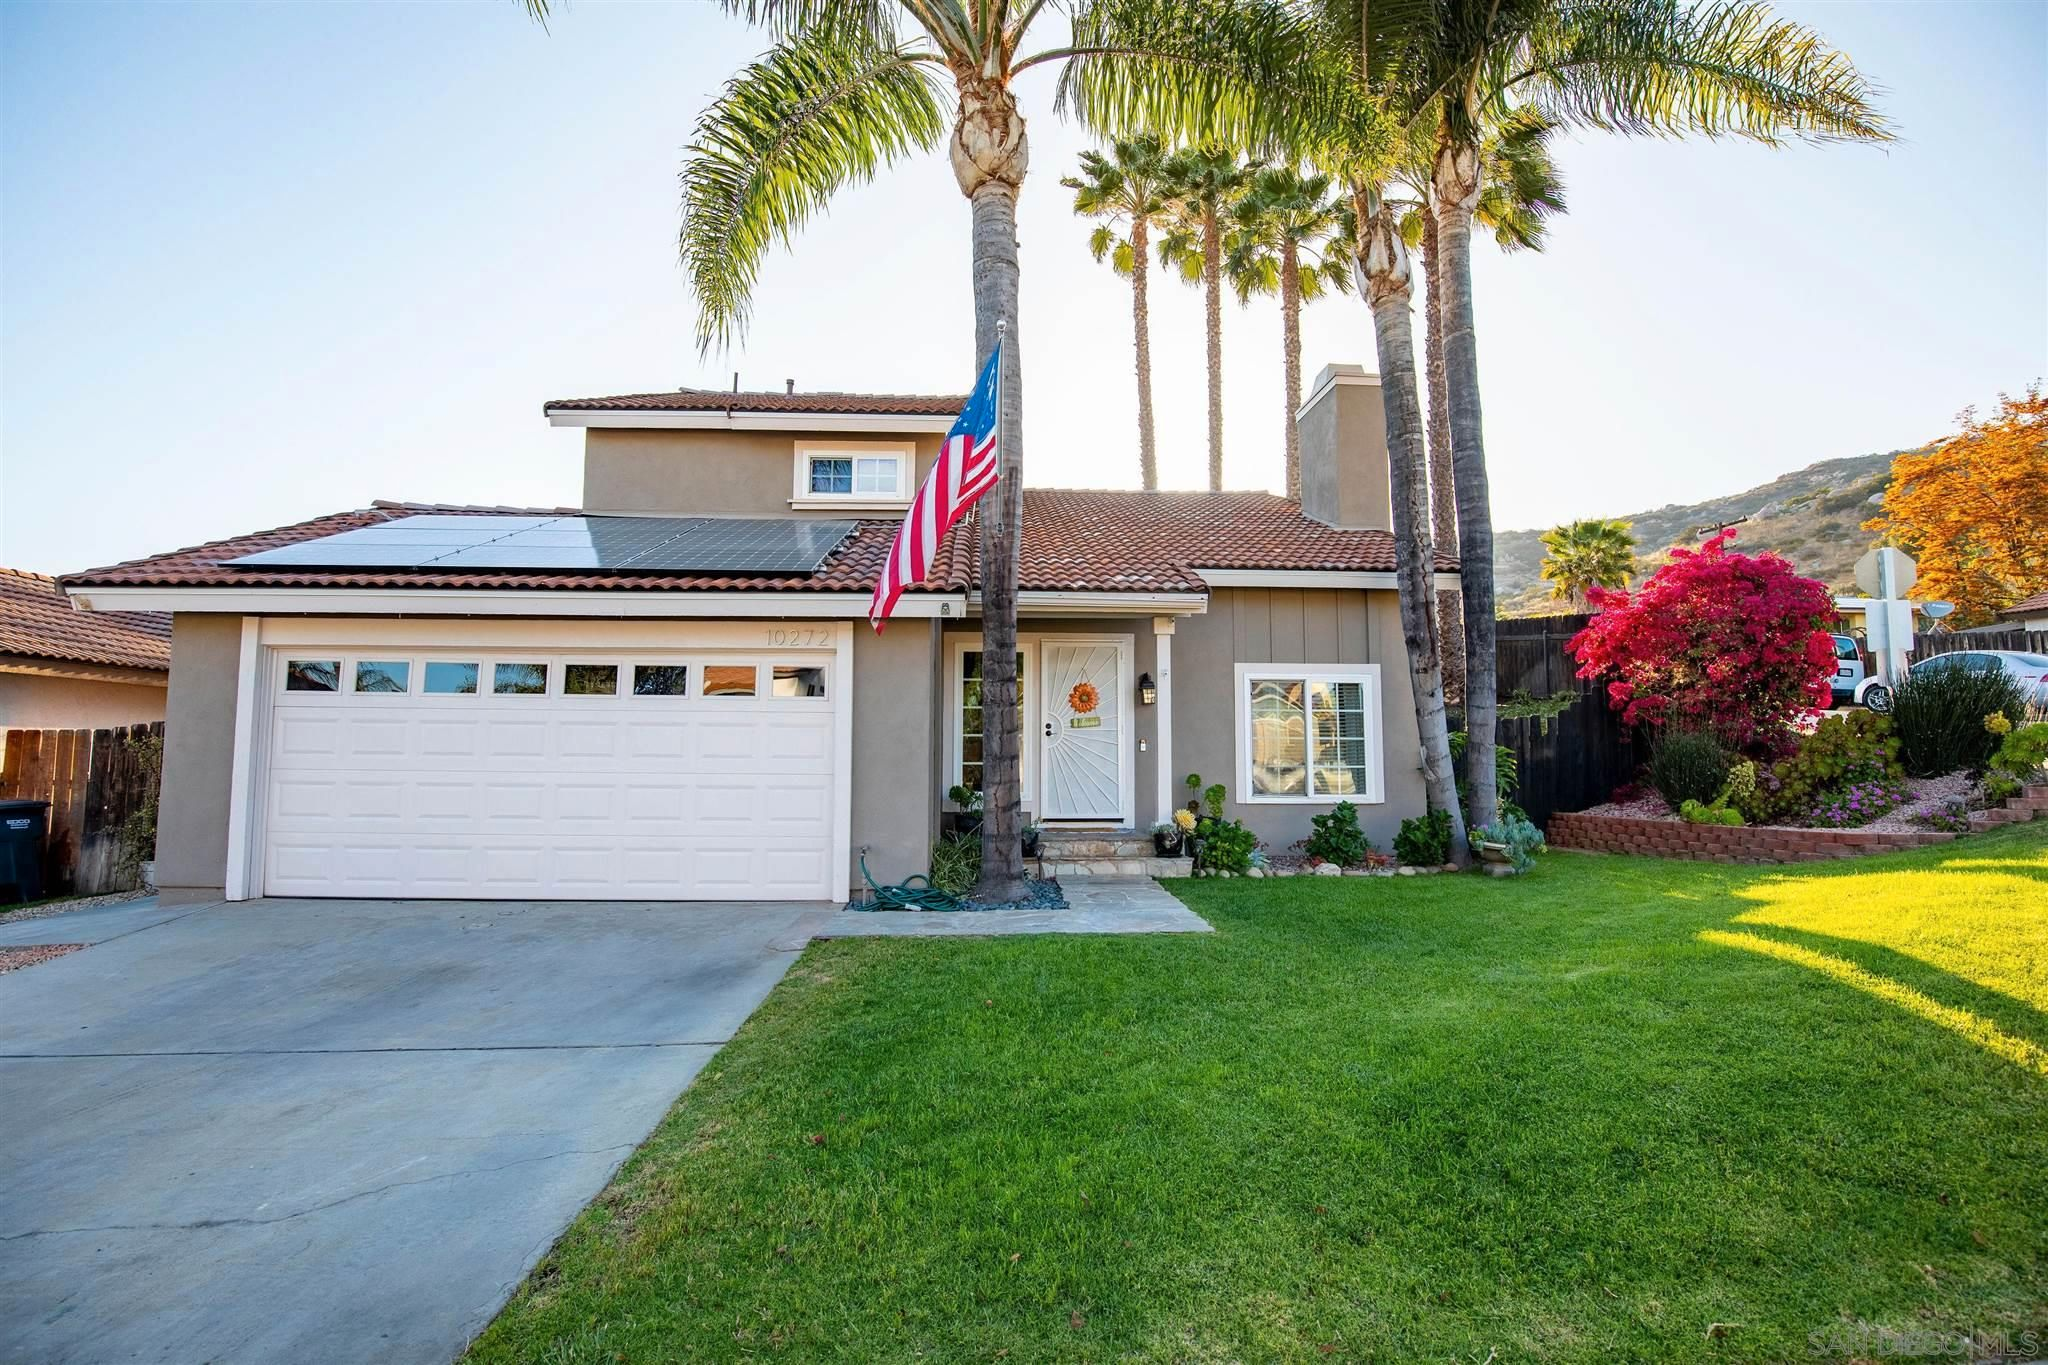 Main Photo: LAKESIDE House for sale : 4 bedrooms : 10272 Paseo Park Dr